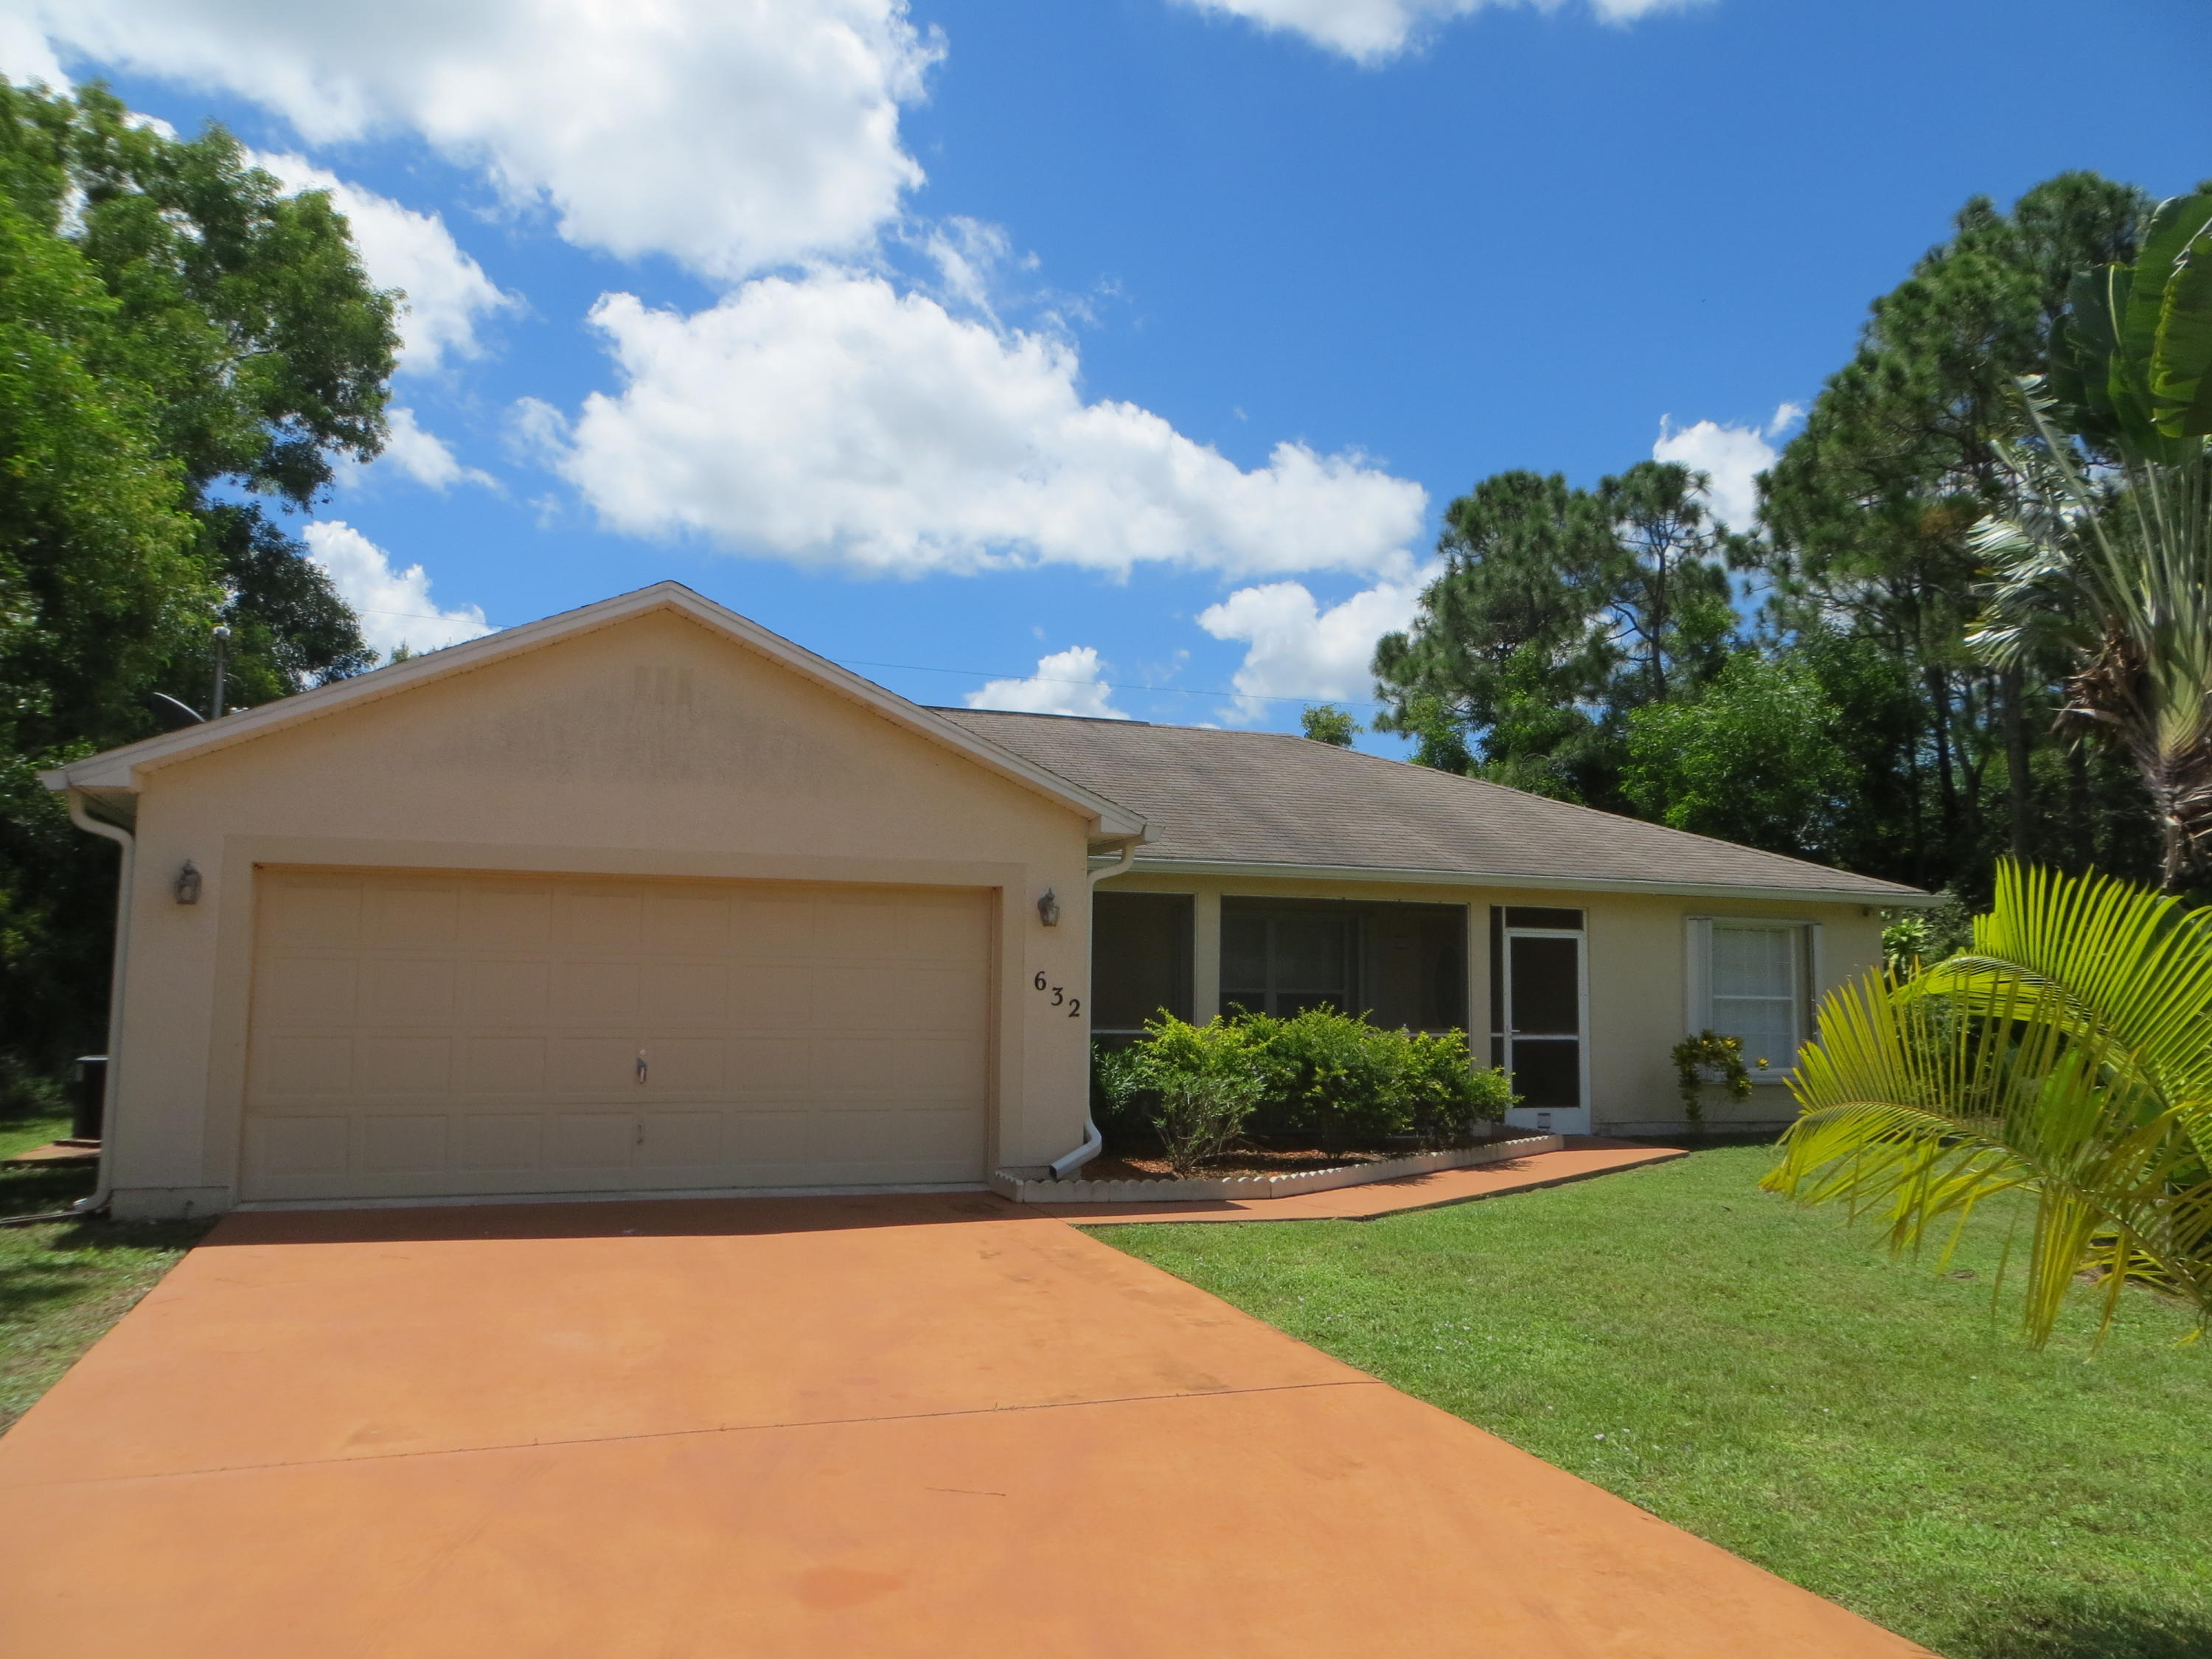 632 Se Faith Terrace, Port Saint Lucie, FL 34983